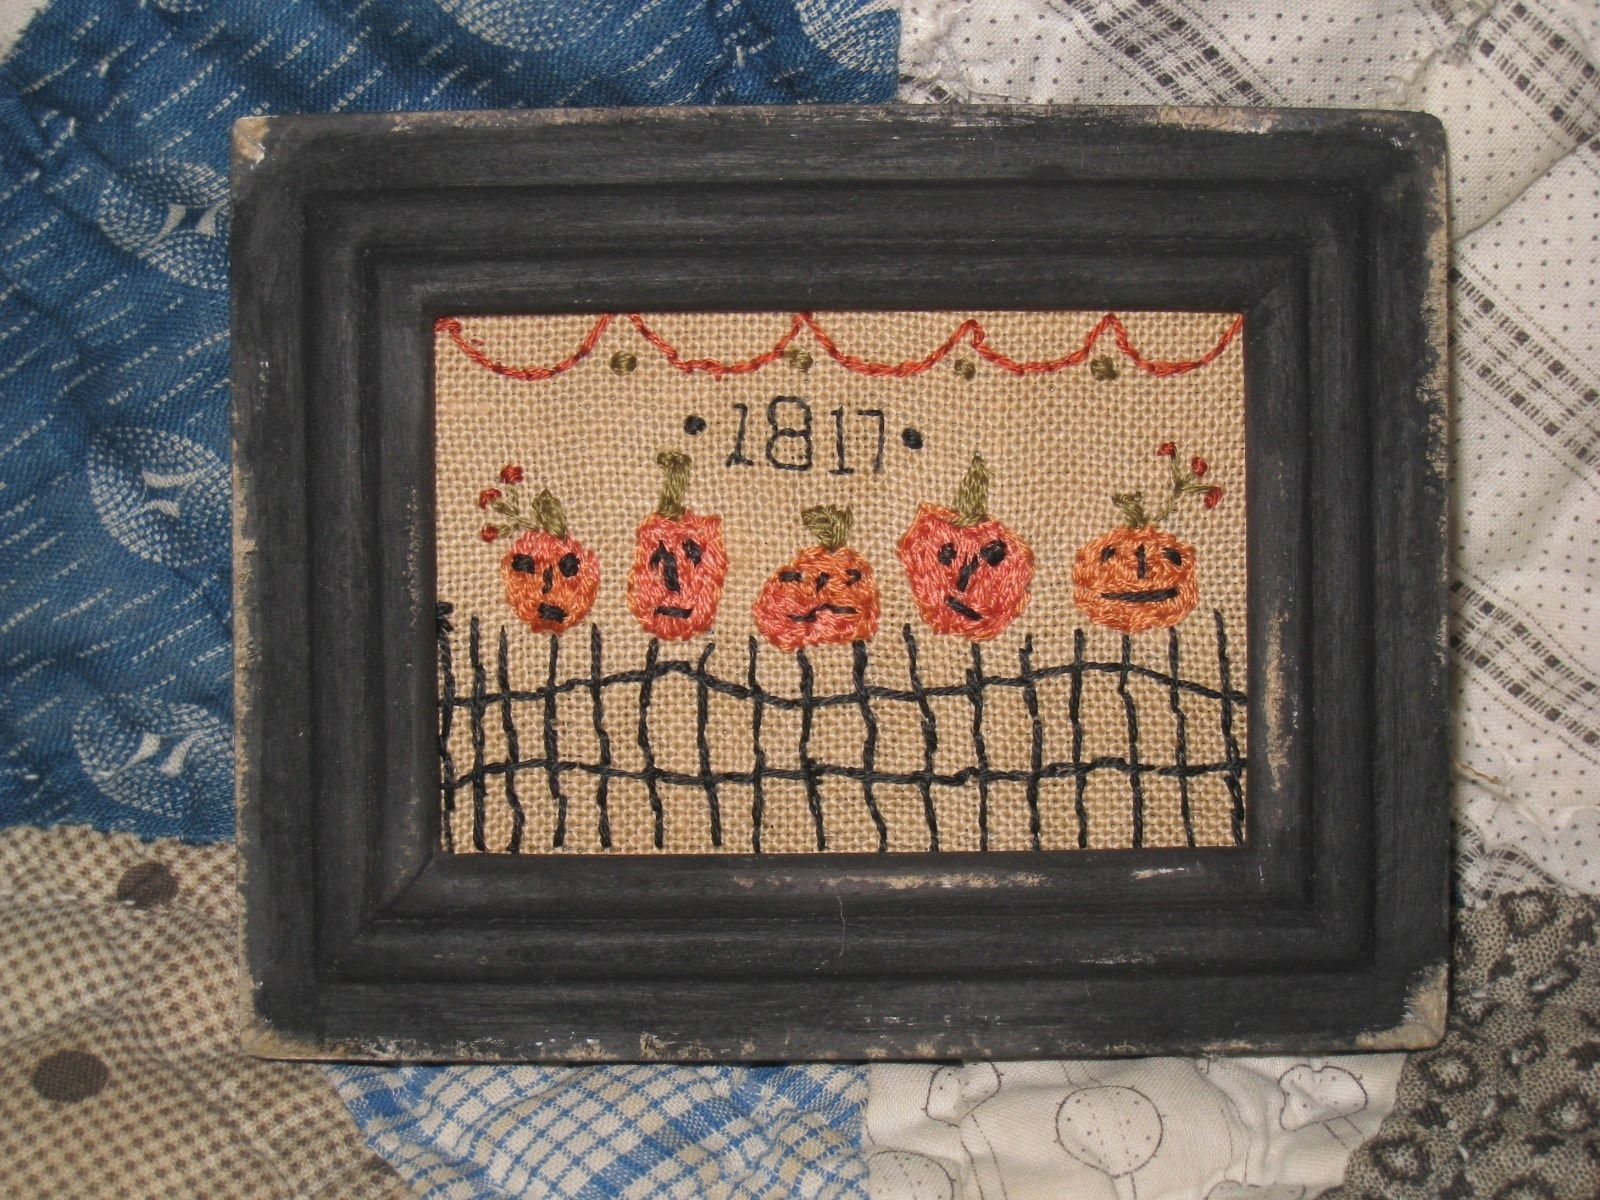 Pin by elizabeth moore on embroidery pinterest embroidery